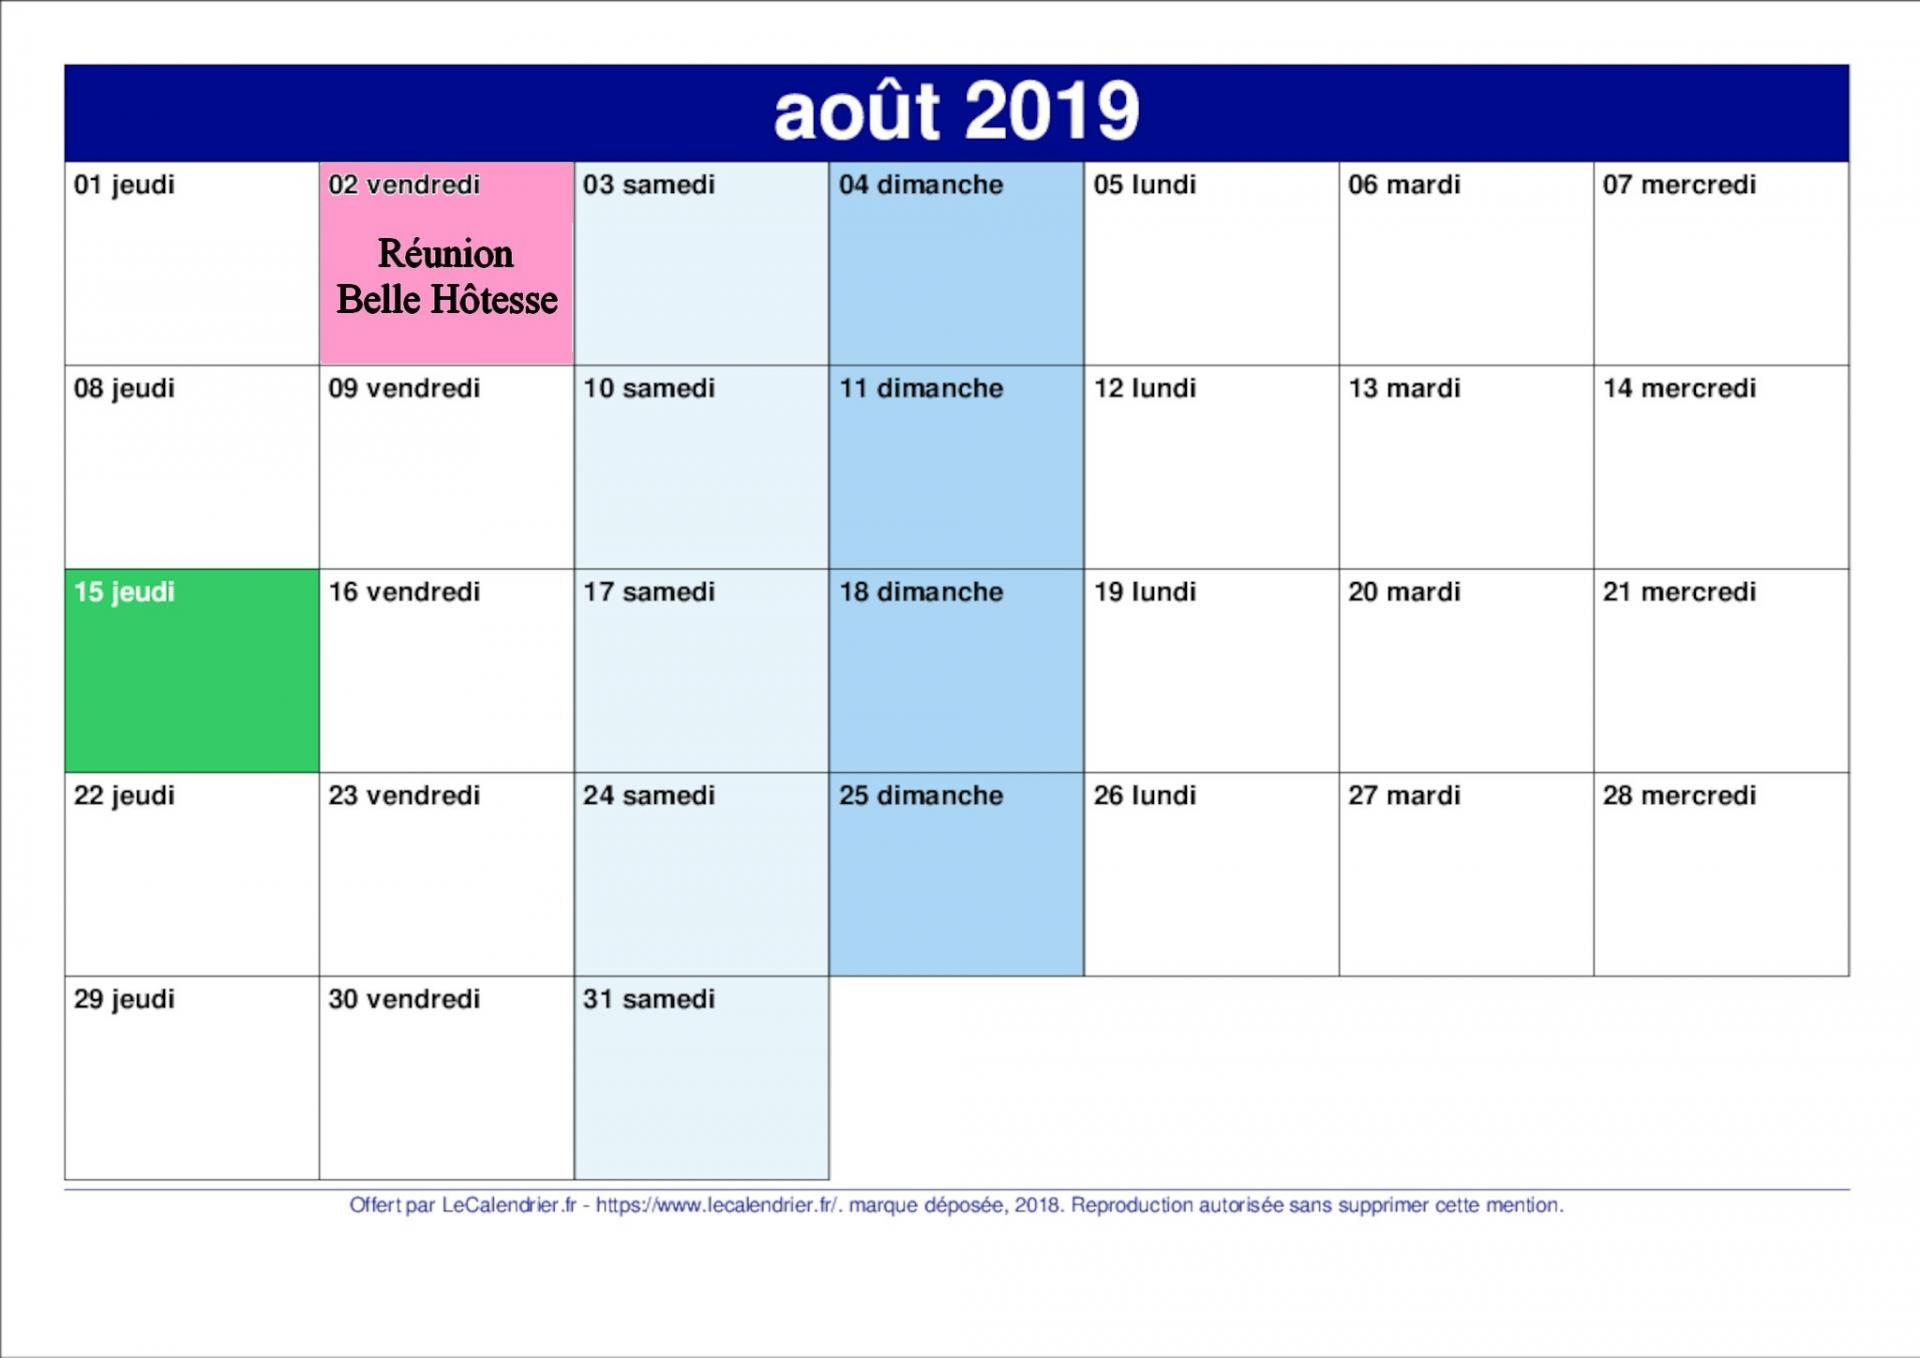 Calendrier aout 2019